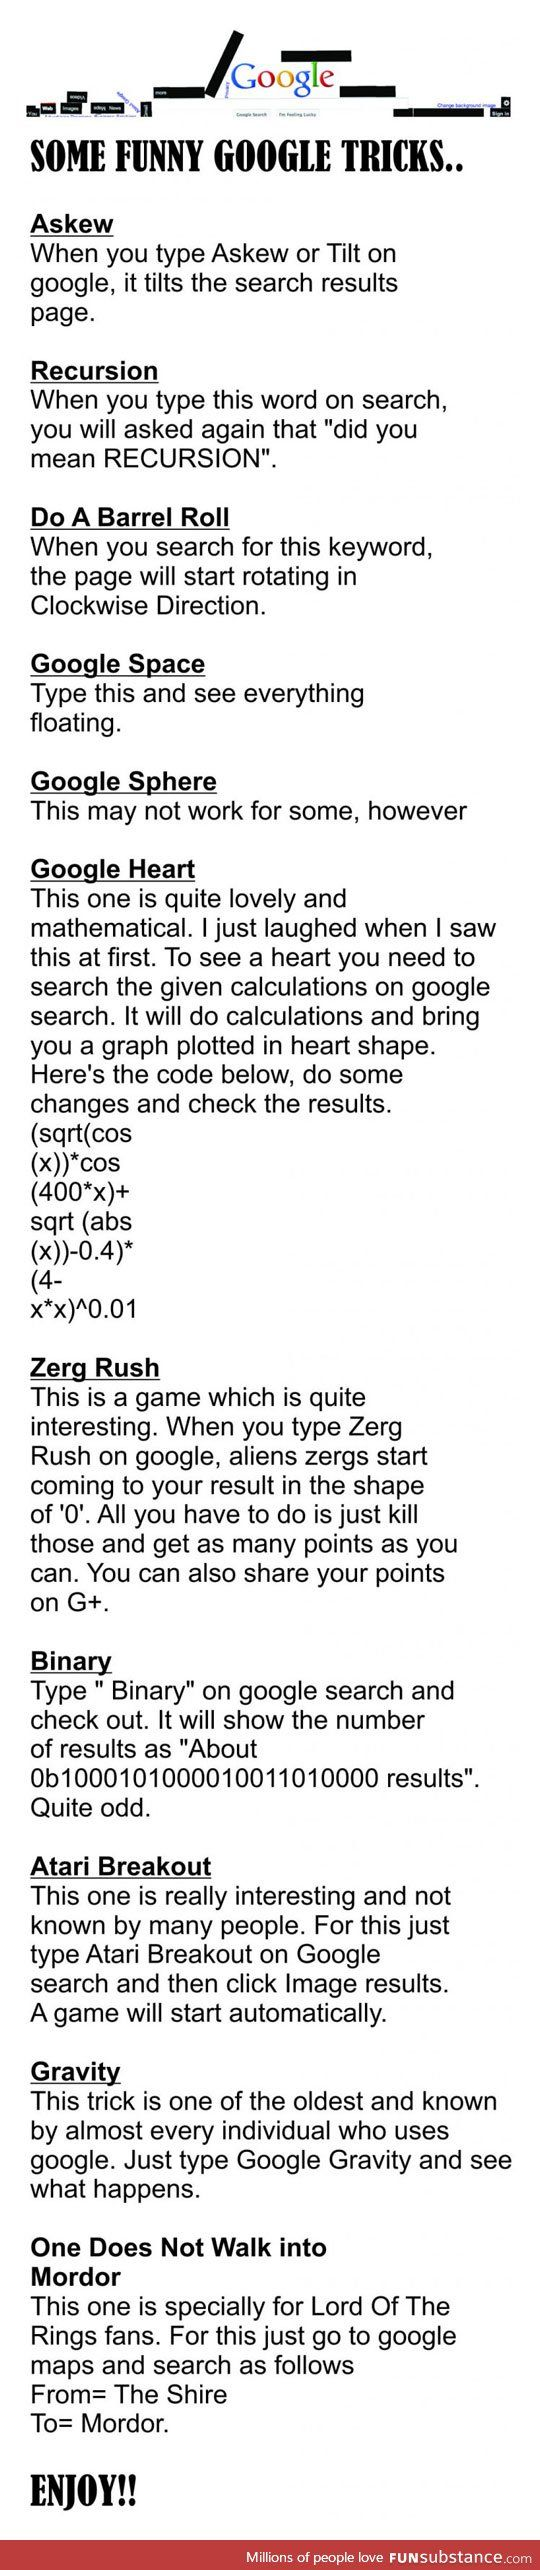 Some funny google tricks ... heart, binary and the Mordor ones didn't work for me, but the rest did!